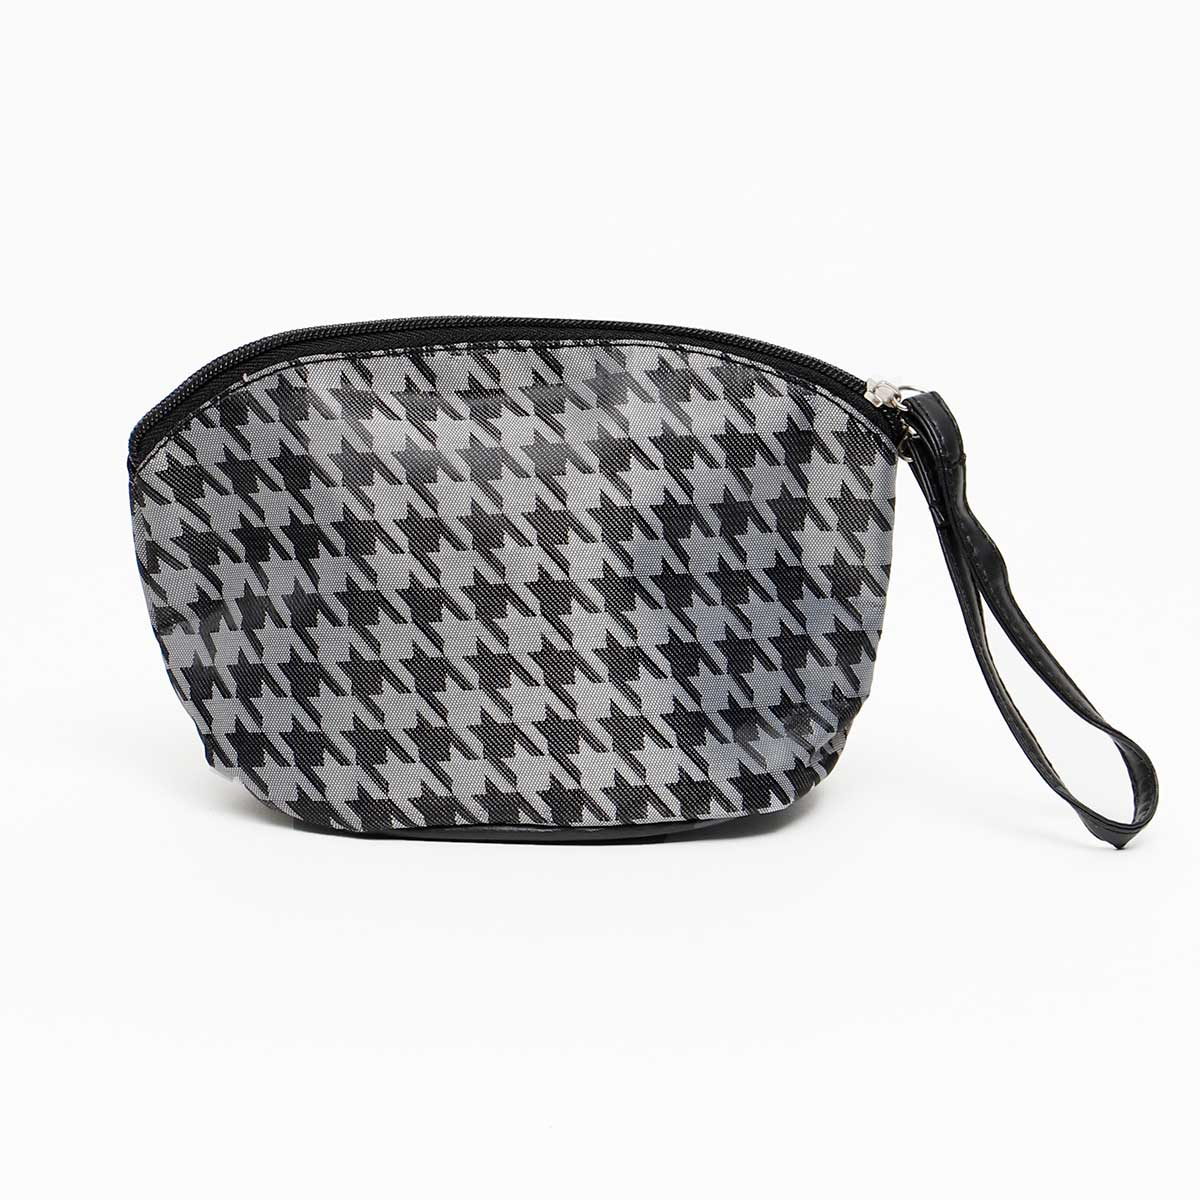 GRAY/BLACK HOUNDSTOOTH ACCESSORY BAG